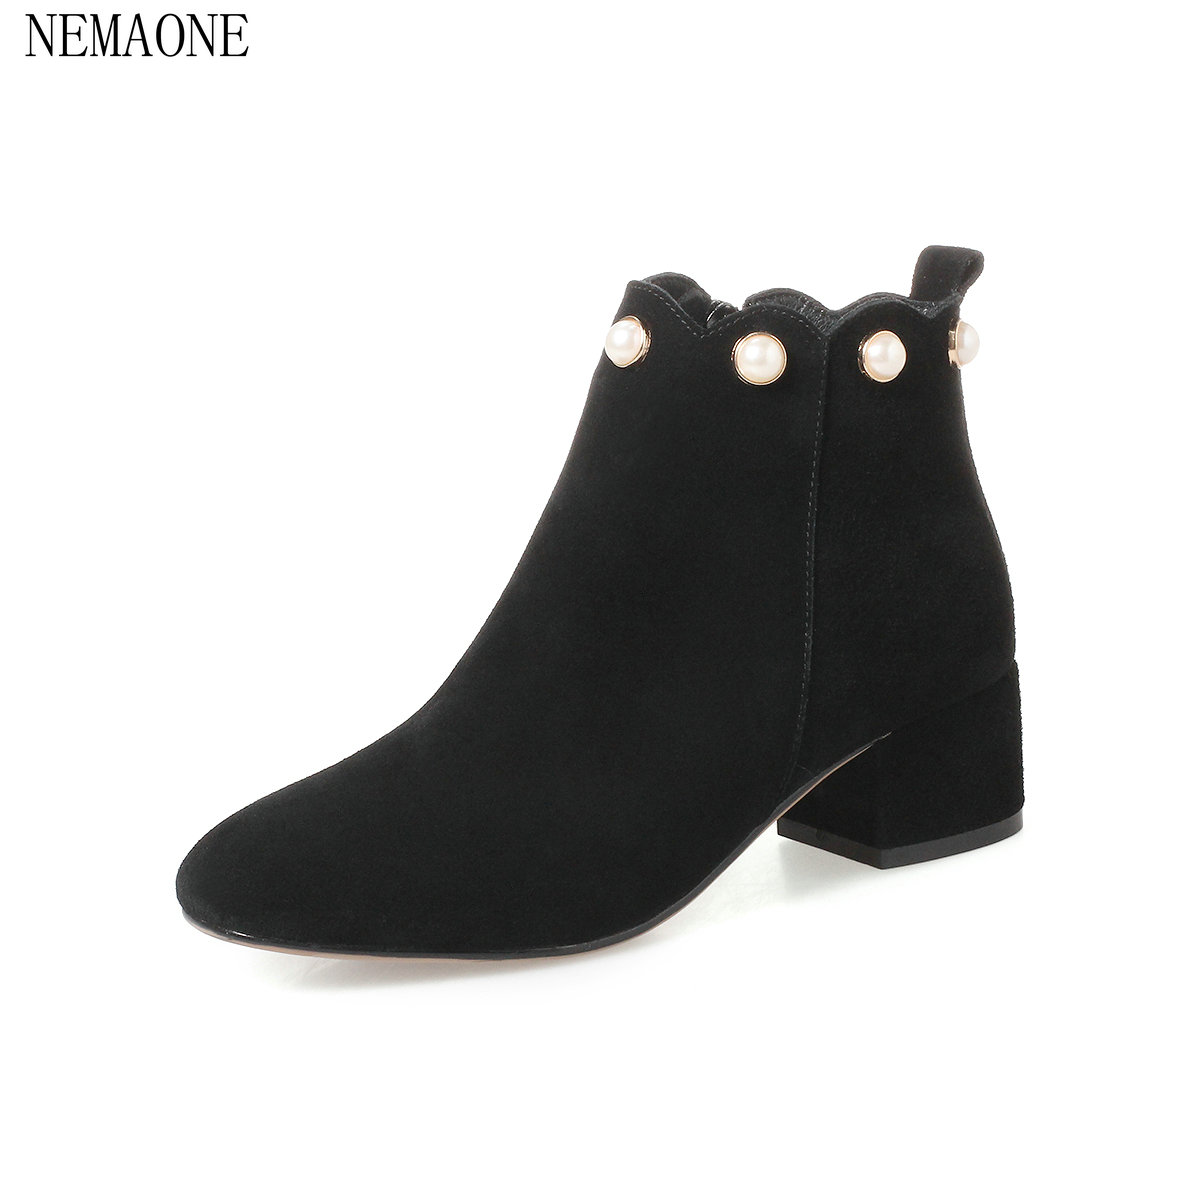 NEMAONE  New 2018 cow suede leather ladies shoes woman ankle boots round toe square high heel zip Autumn black size34-43 only true love women ankle boots full grain leather high square heel round toe shoes woman black